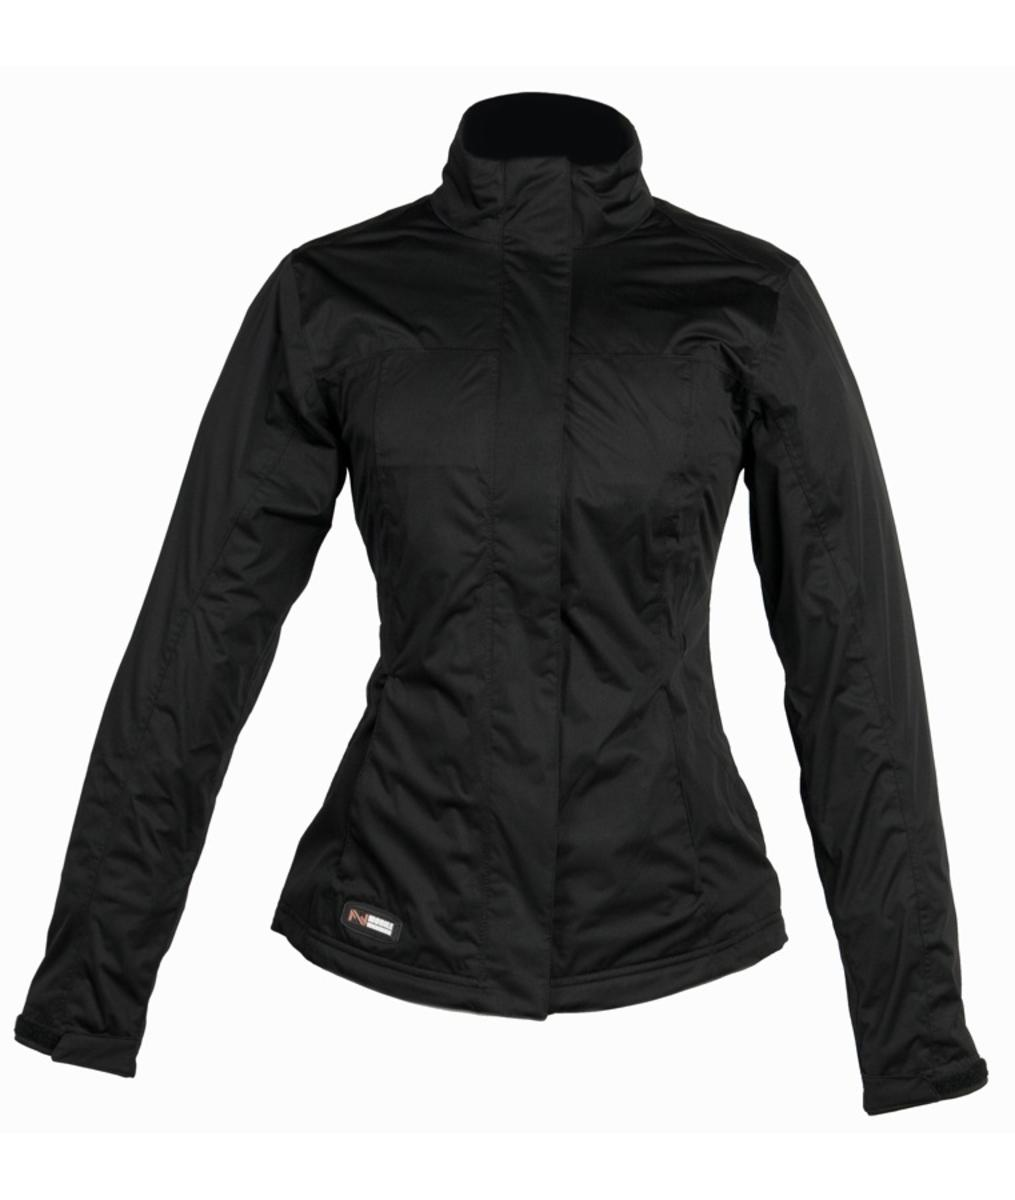 Womens Heated Clothing >> Mobile Warming Womens Heated Golf Rain Jacket The Warming Store